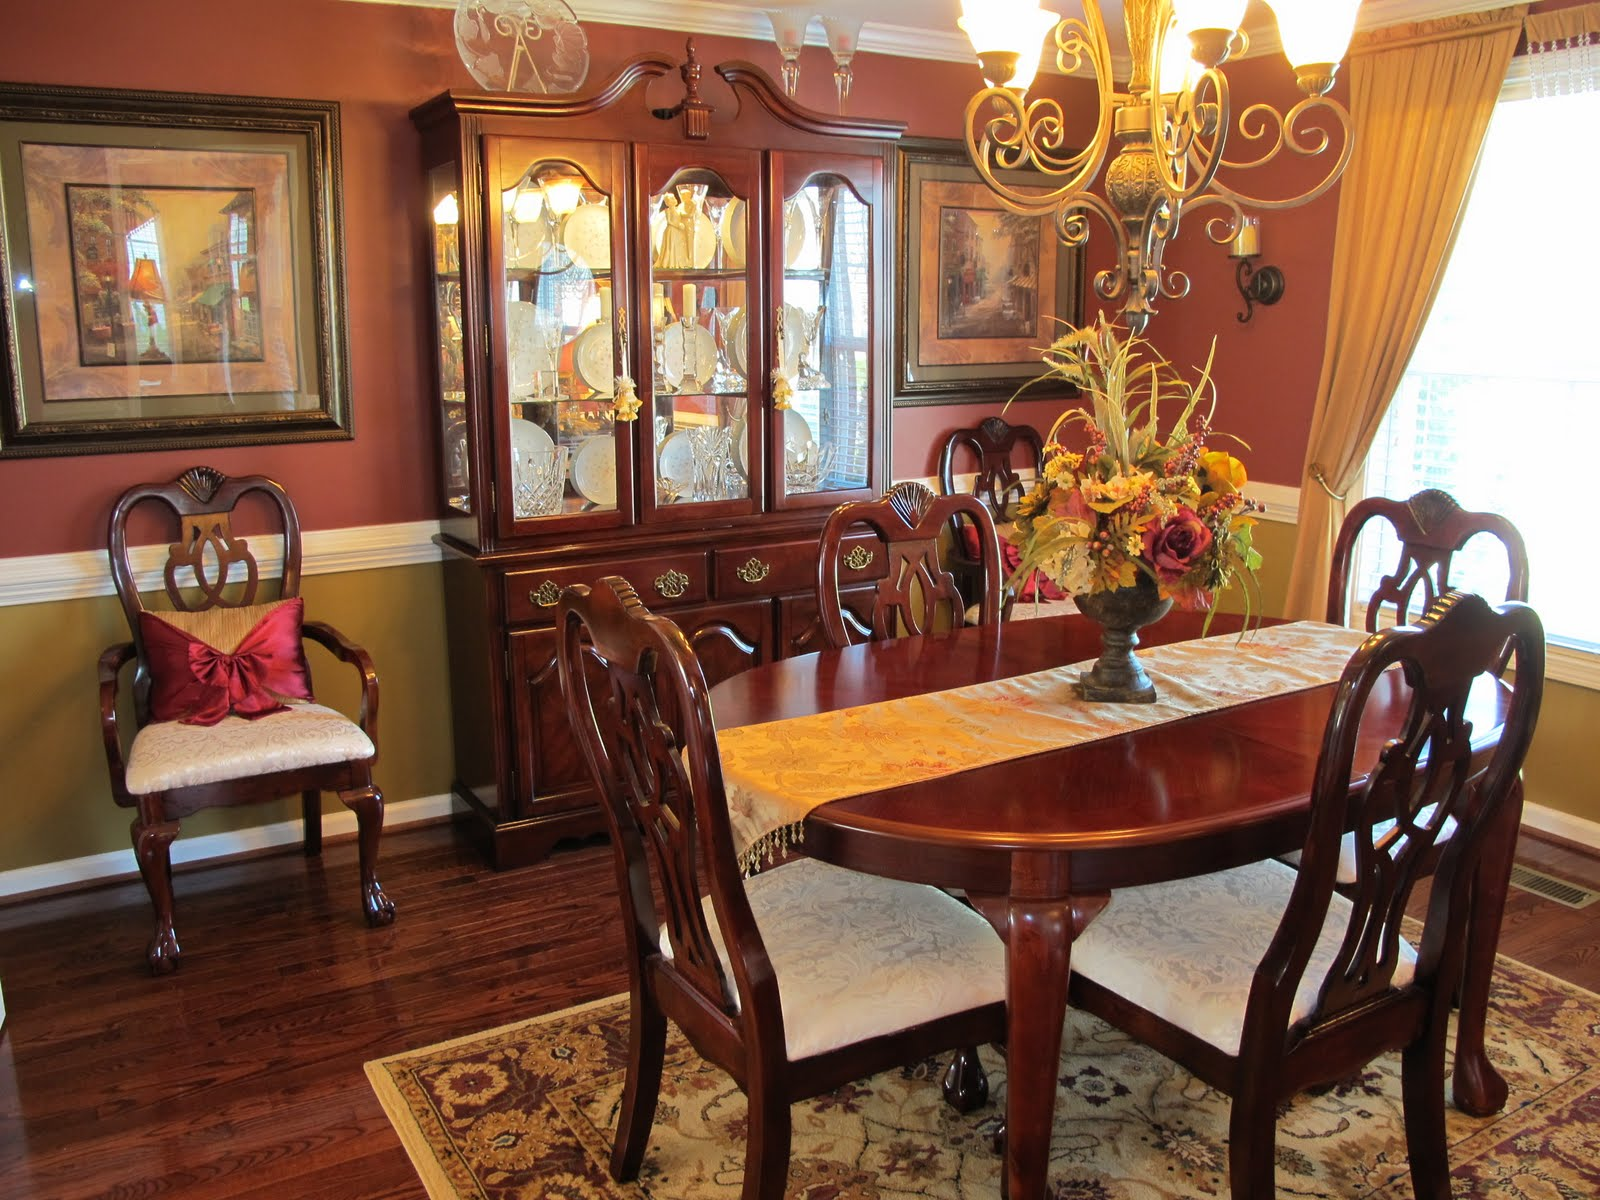 Charming Formal Dining Room Sets With Buffet And Ceiling Light For